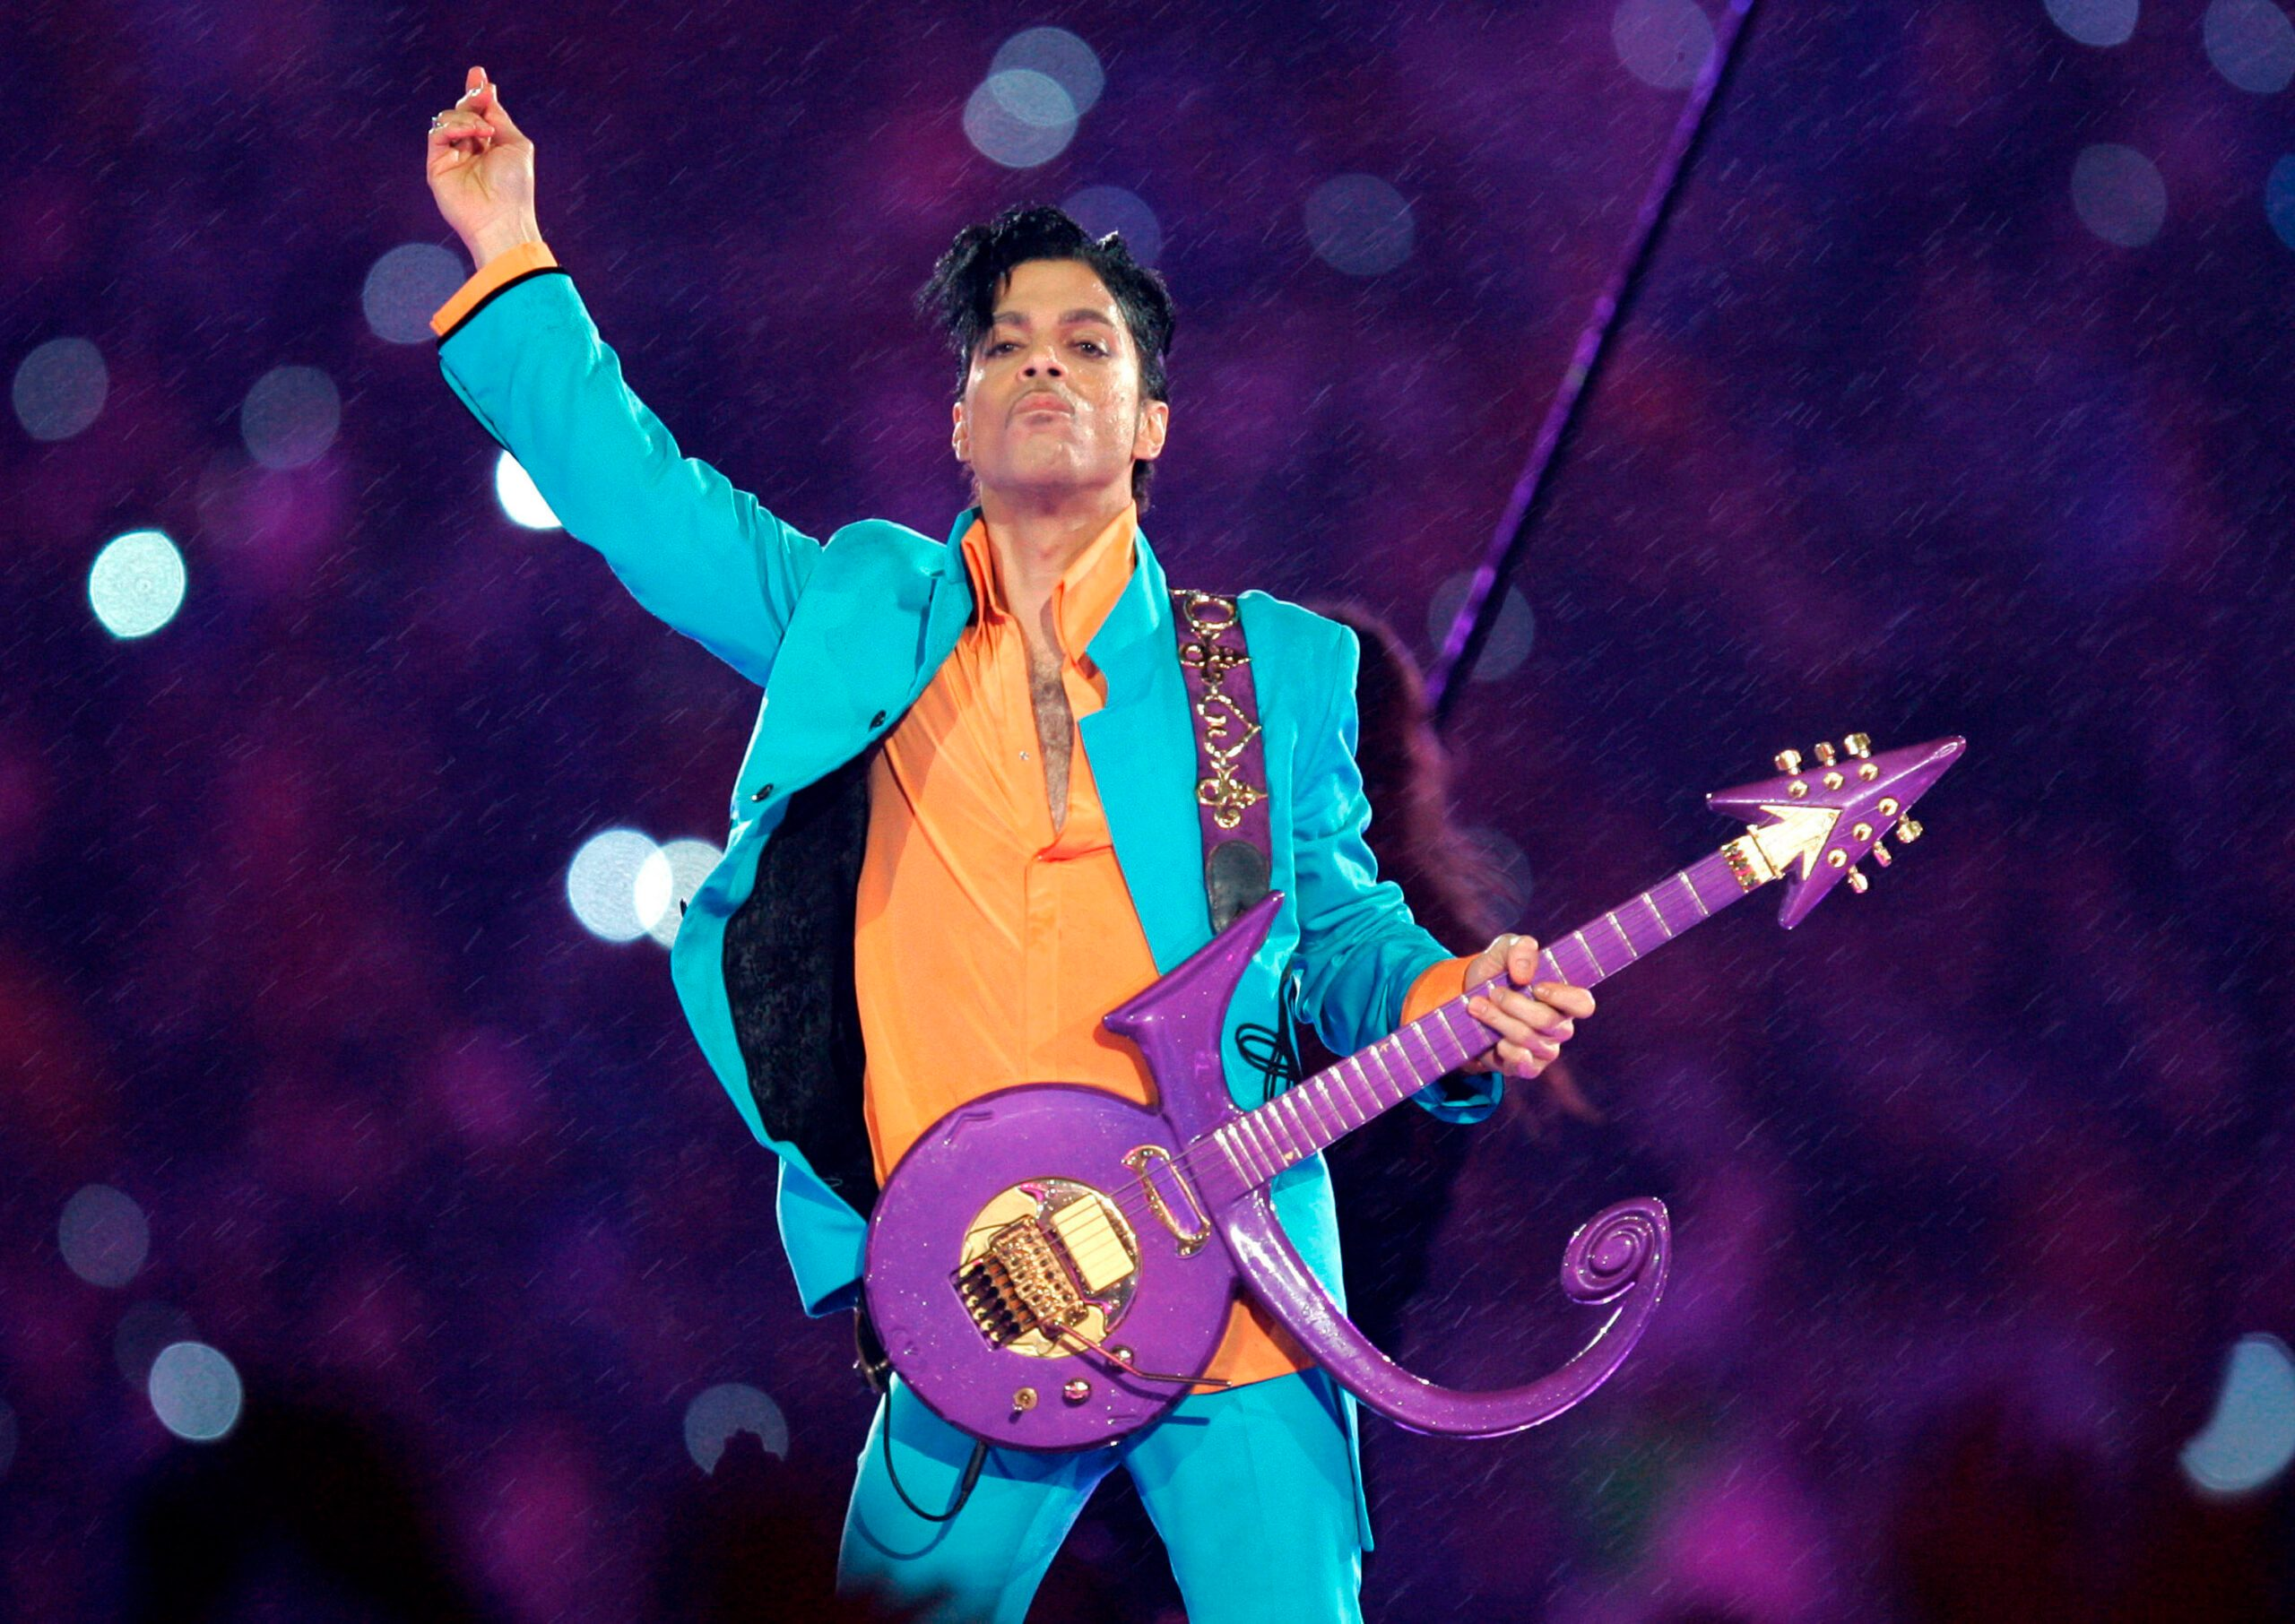 First Steps Made in Congress to Honor Pop Superstar Prince - snopes